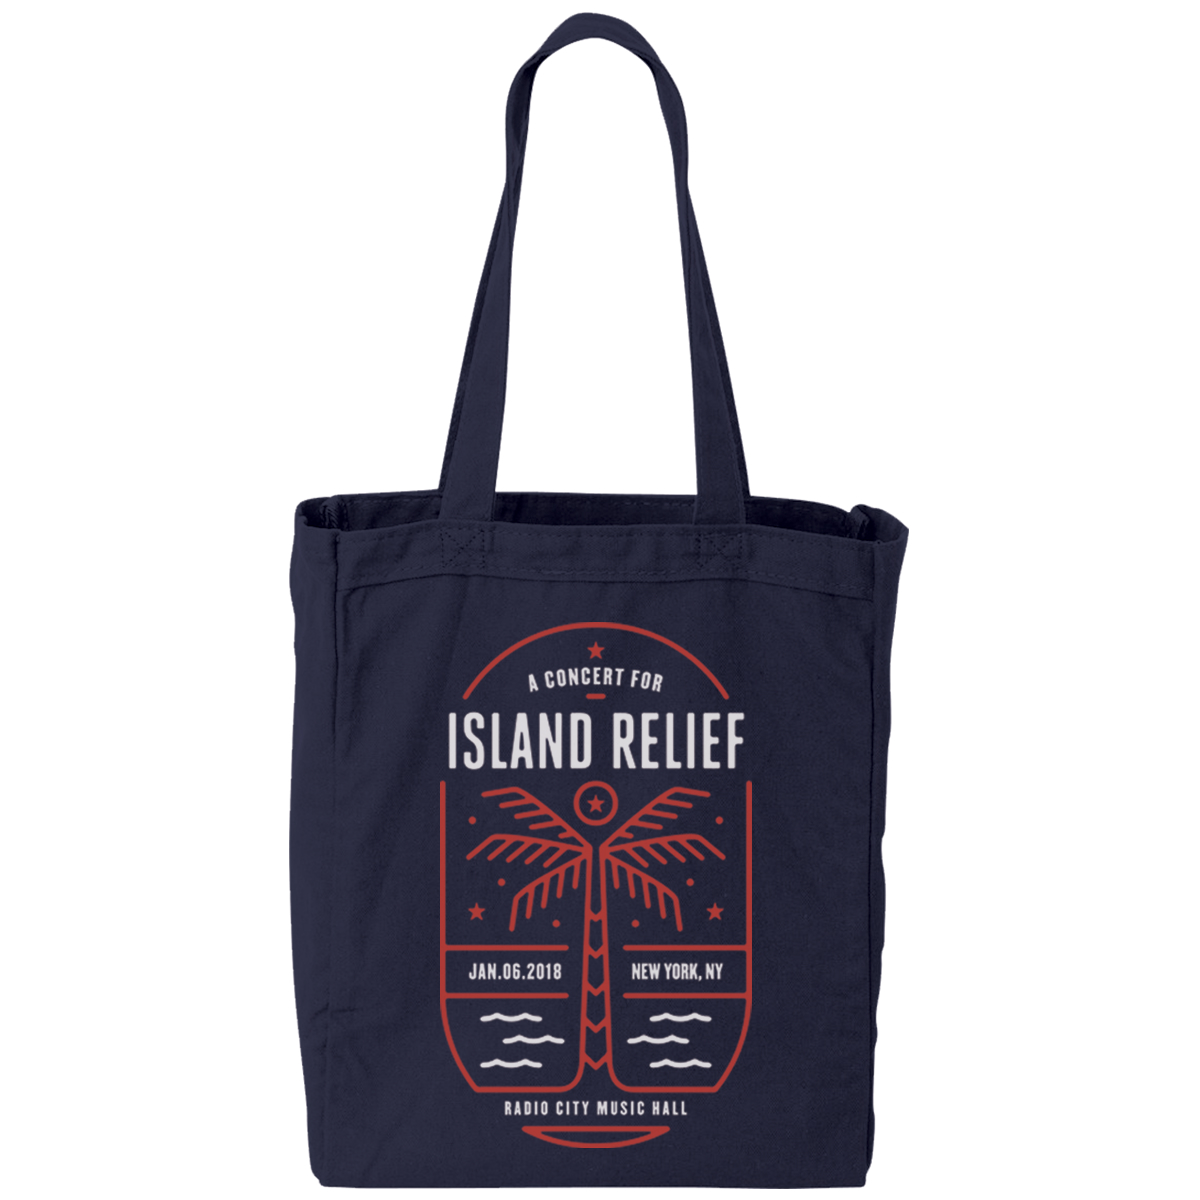 Concert for Island Relief Tote Bag